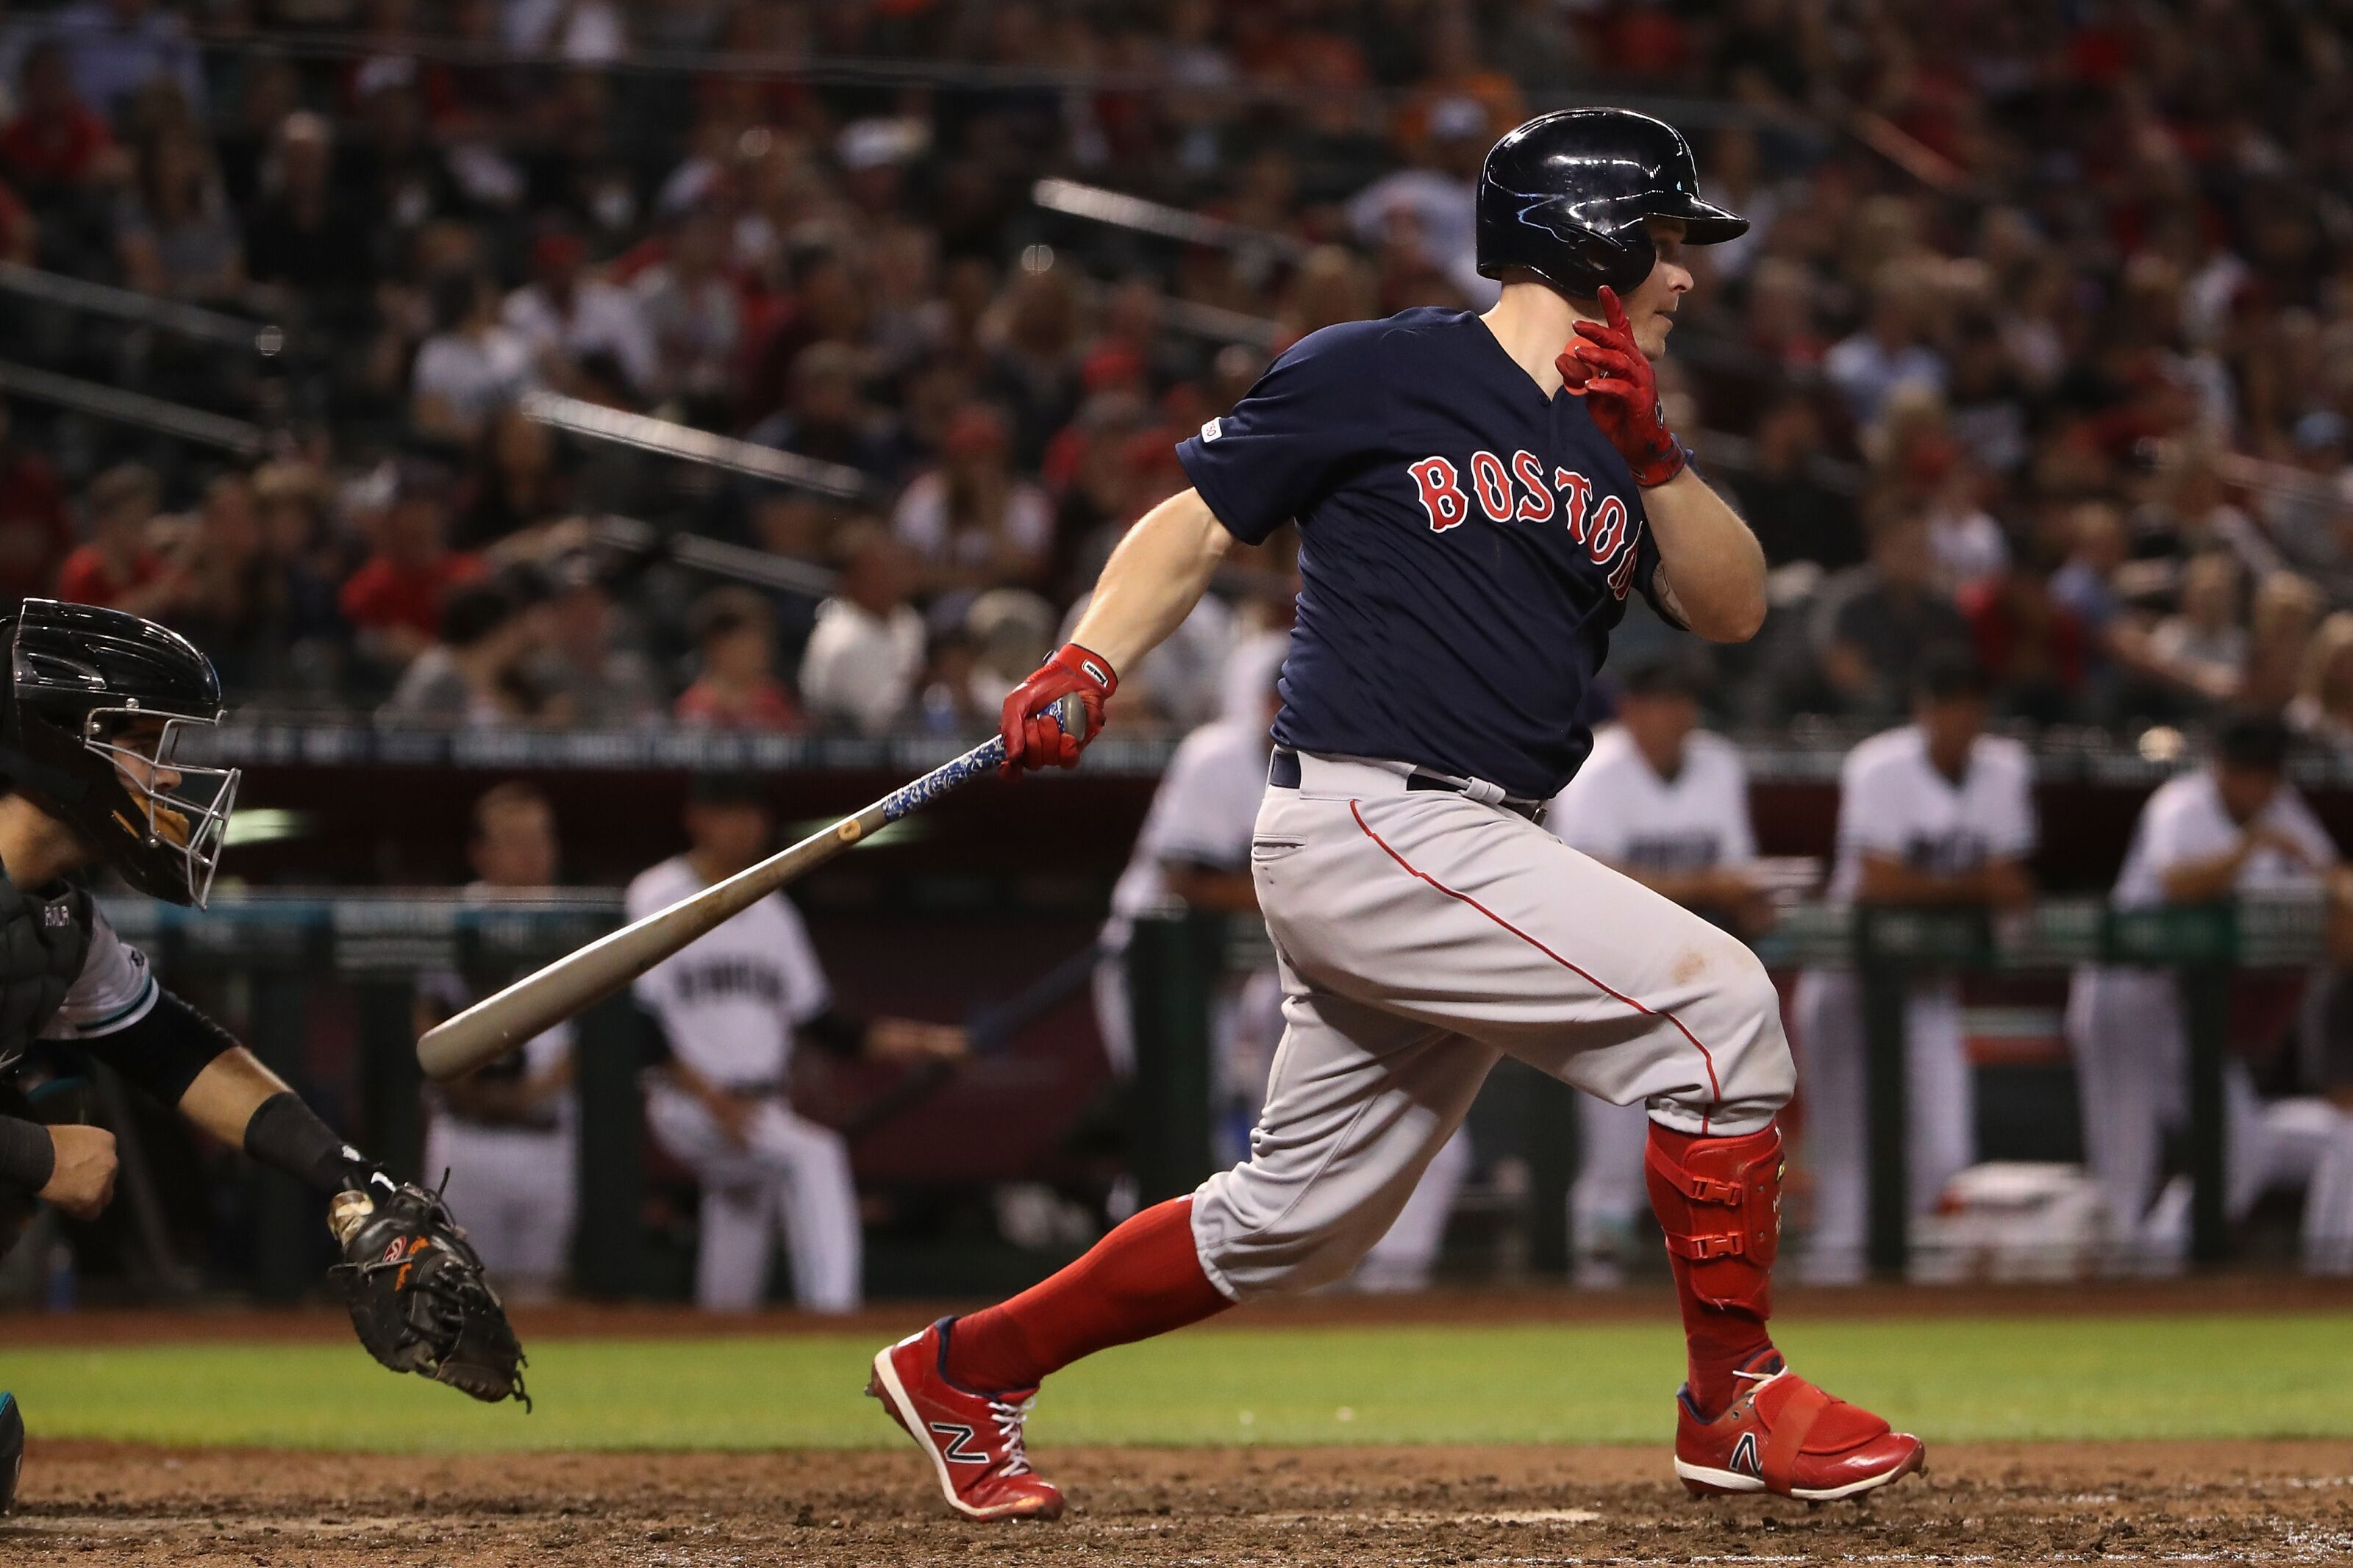 Red Sox Rumors: Division rival showing interest in free-agent Brock Holt